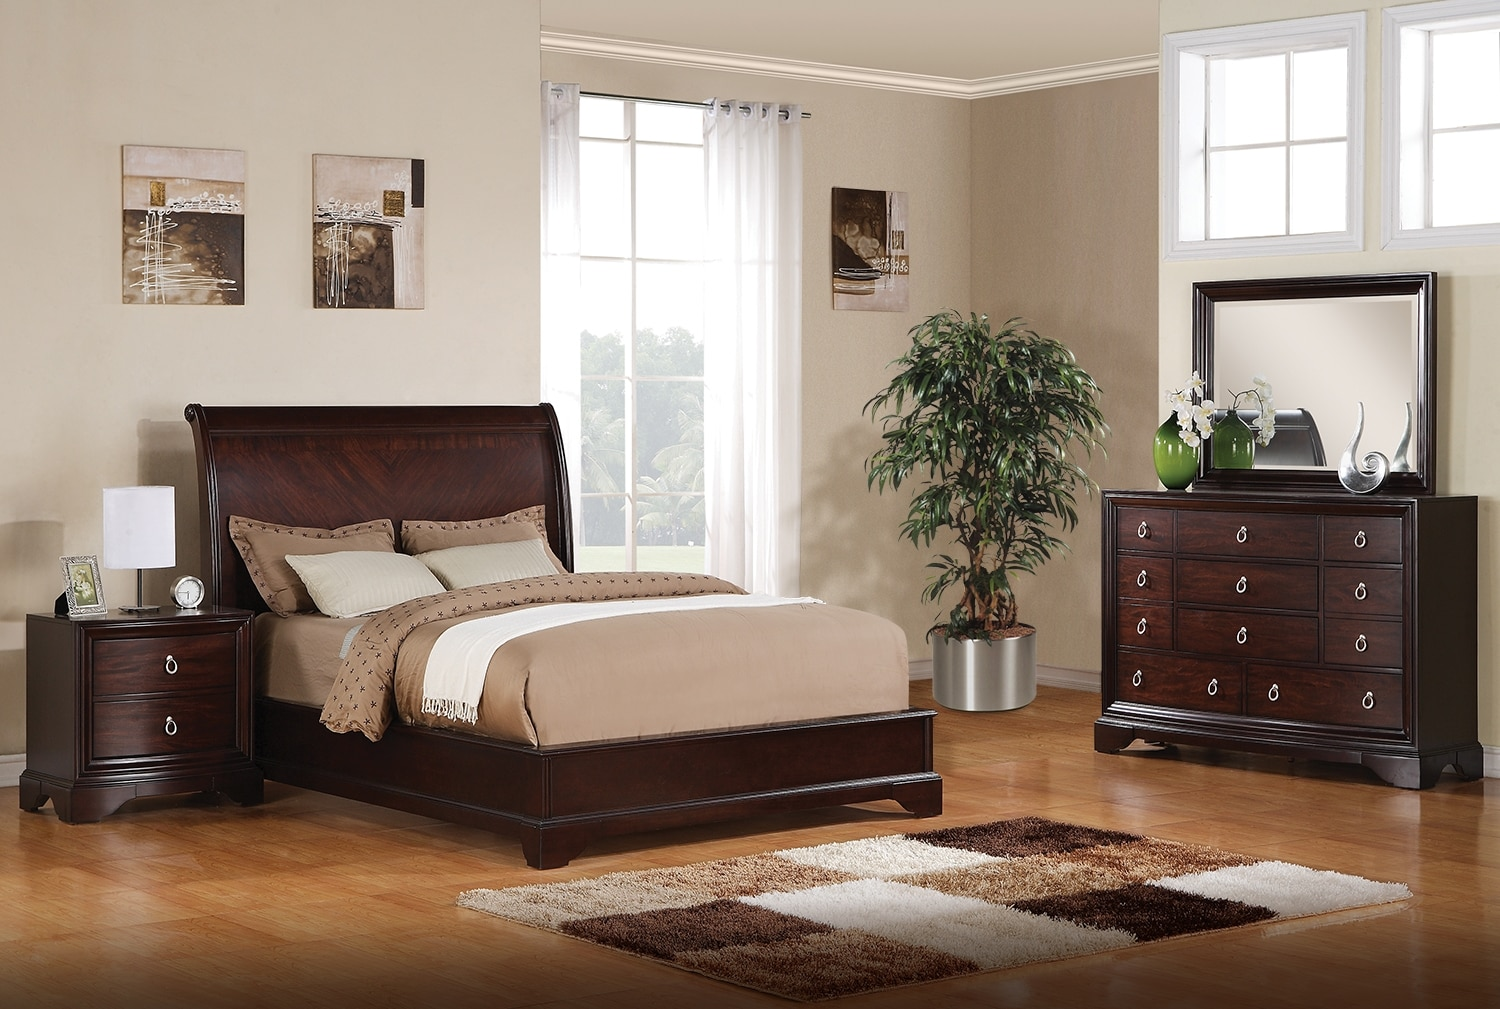 bedroom furniture noah 5 piece king bedroom set dark cherry